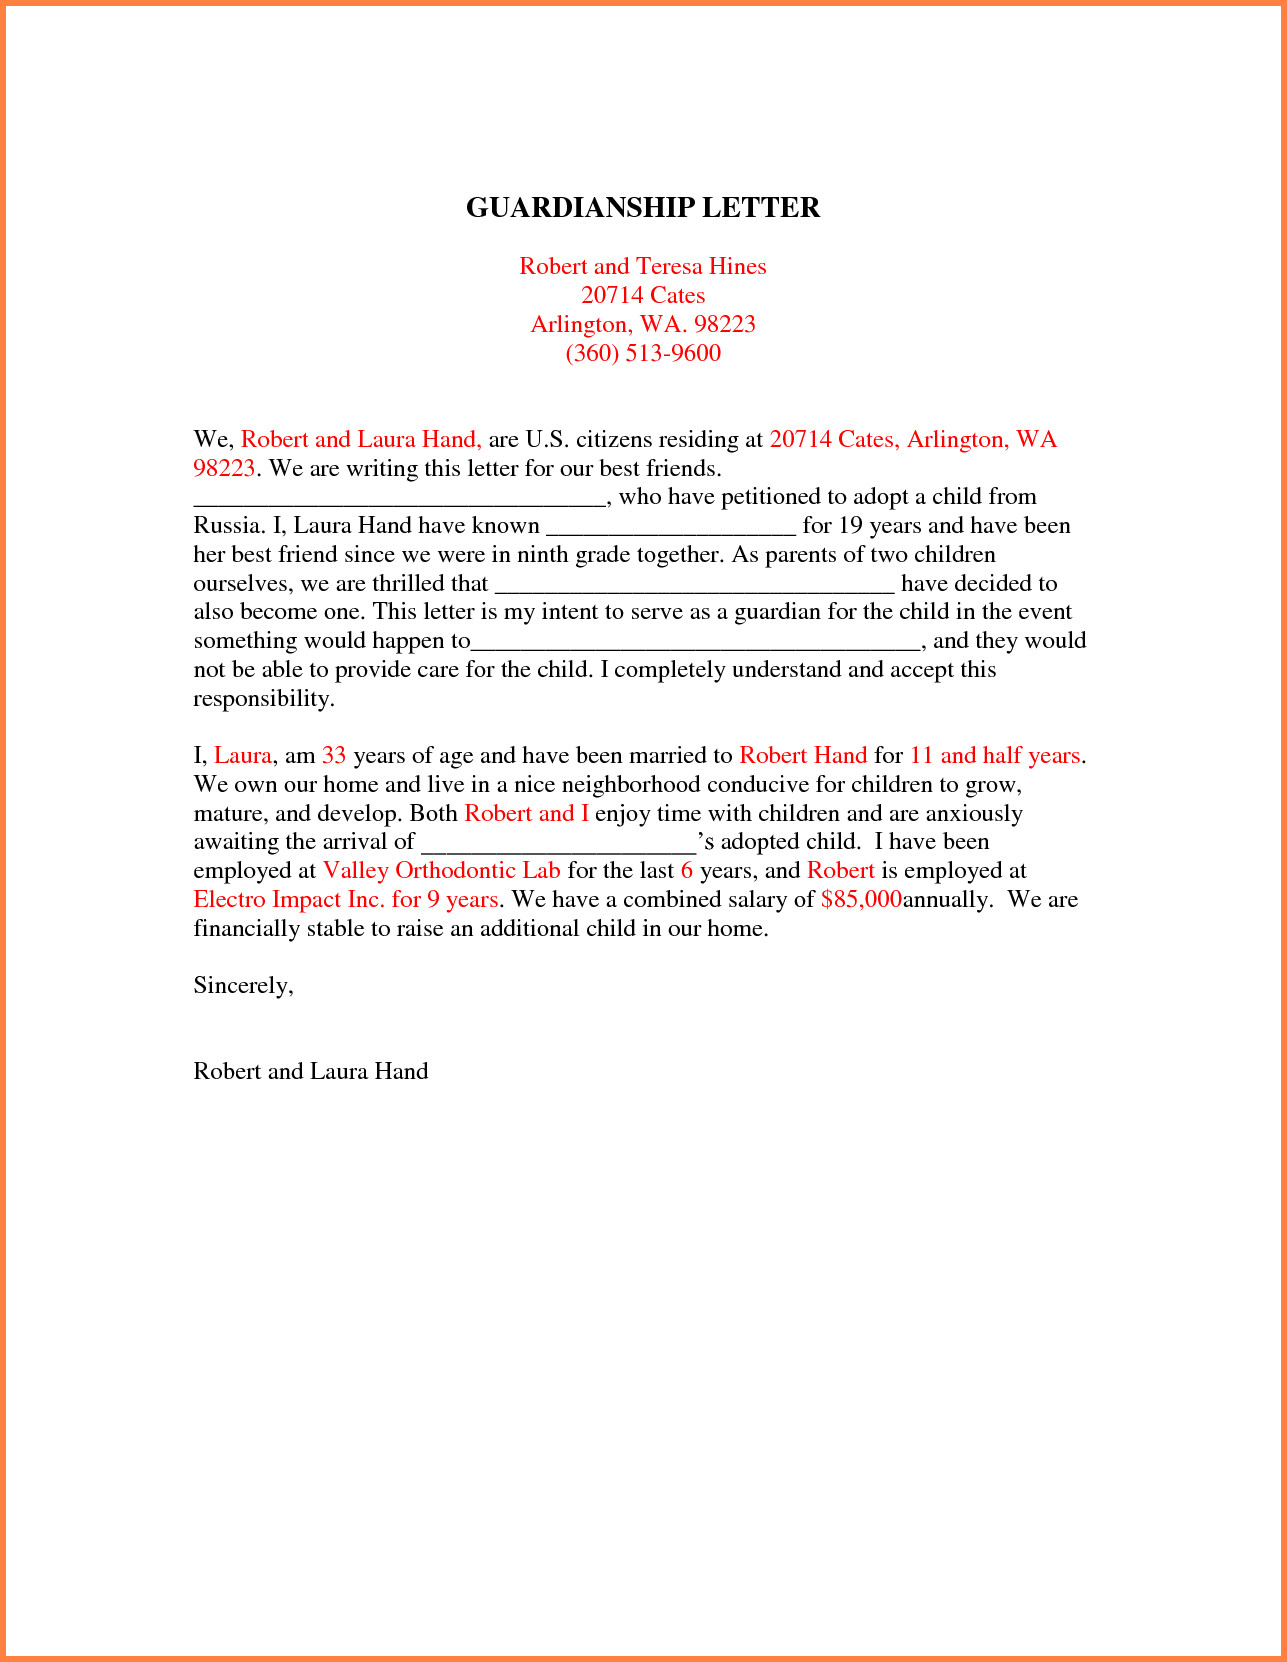 Free Temporary Guardianship Letter Template - Sample Guardianship Letter Inspirational Nice Temporary Guardianship